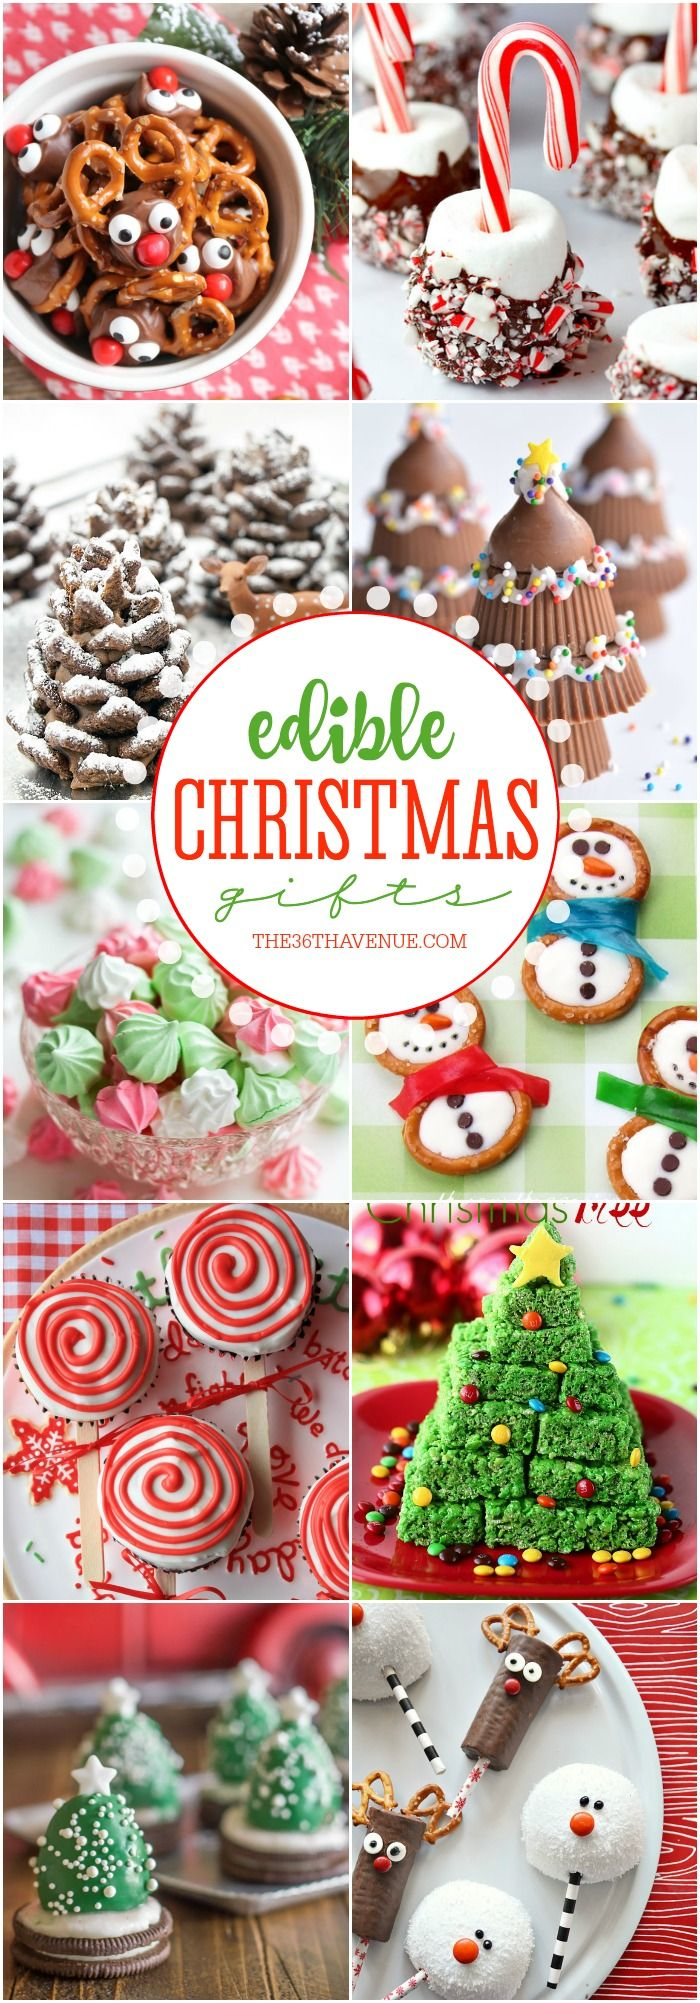 Edible Christmas Treats at the36thavenue.com